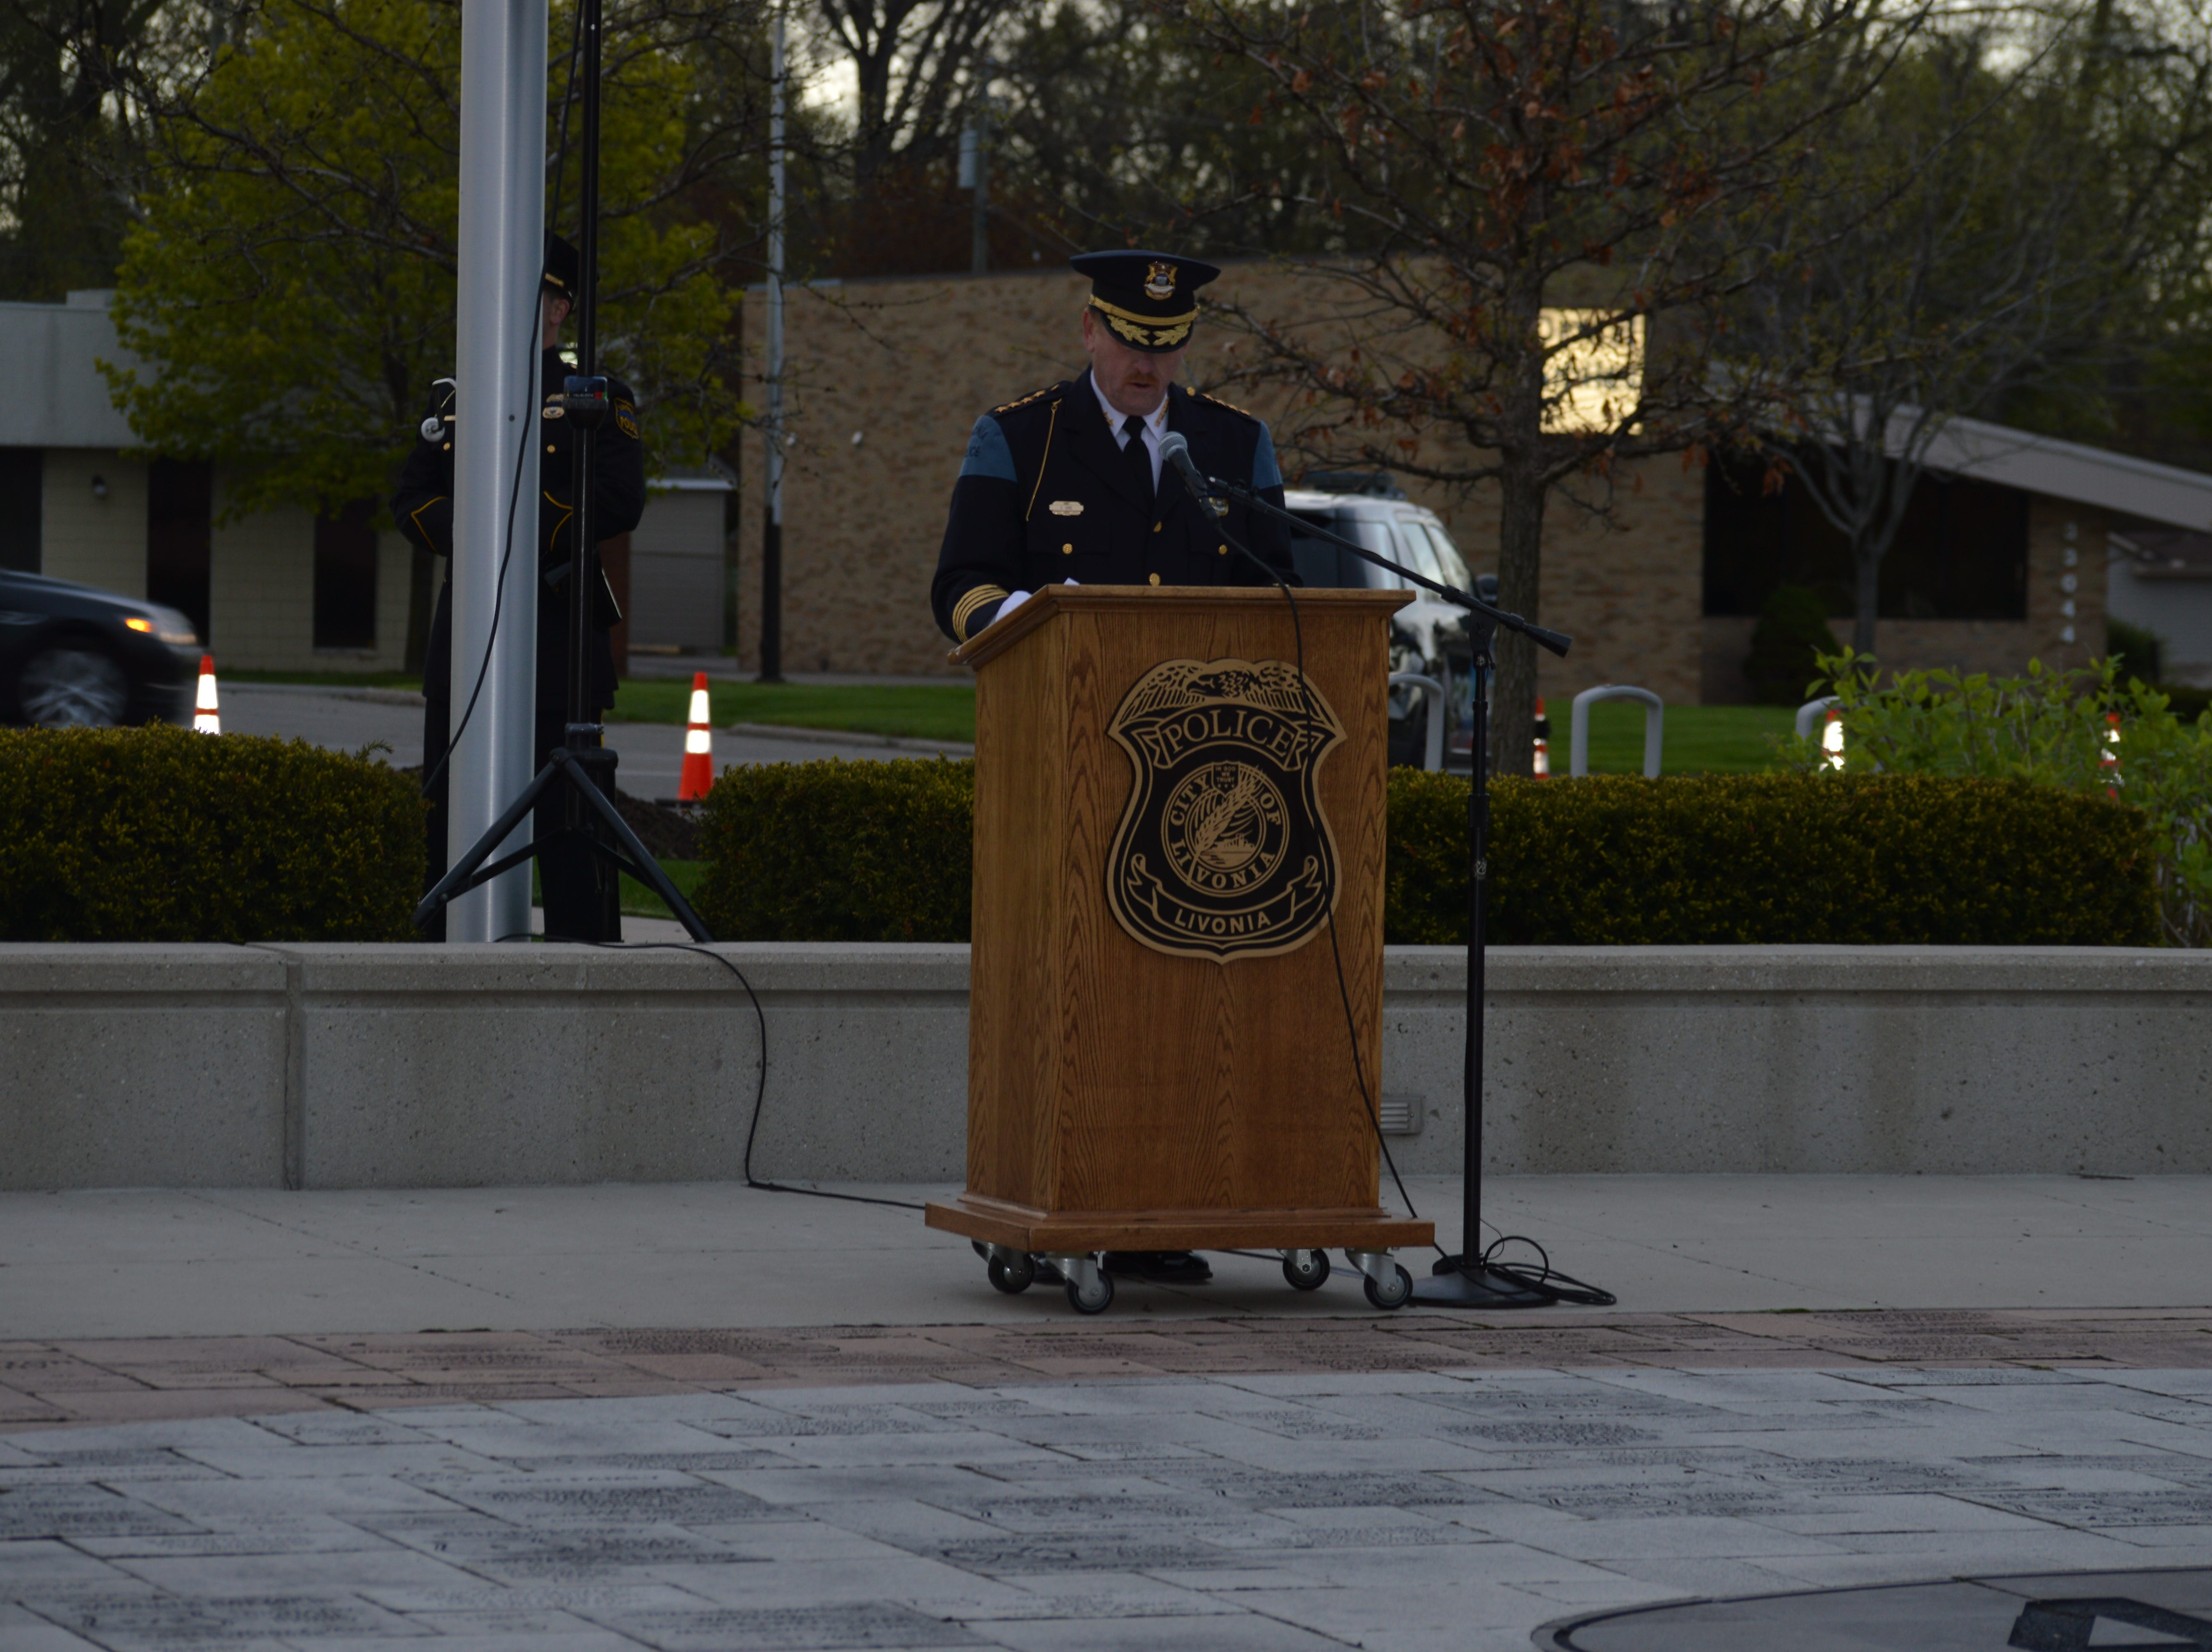 Livonia Police Chief Curtis Caid led the ceremonies at the fifth annual Livonia Police Memorial Ceremony at Larry Nehasil Park on May 7, 2019.